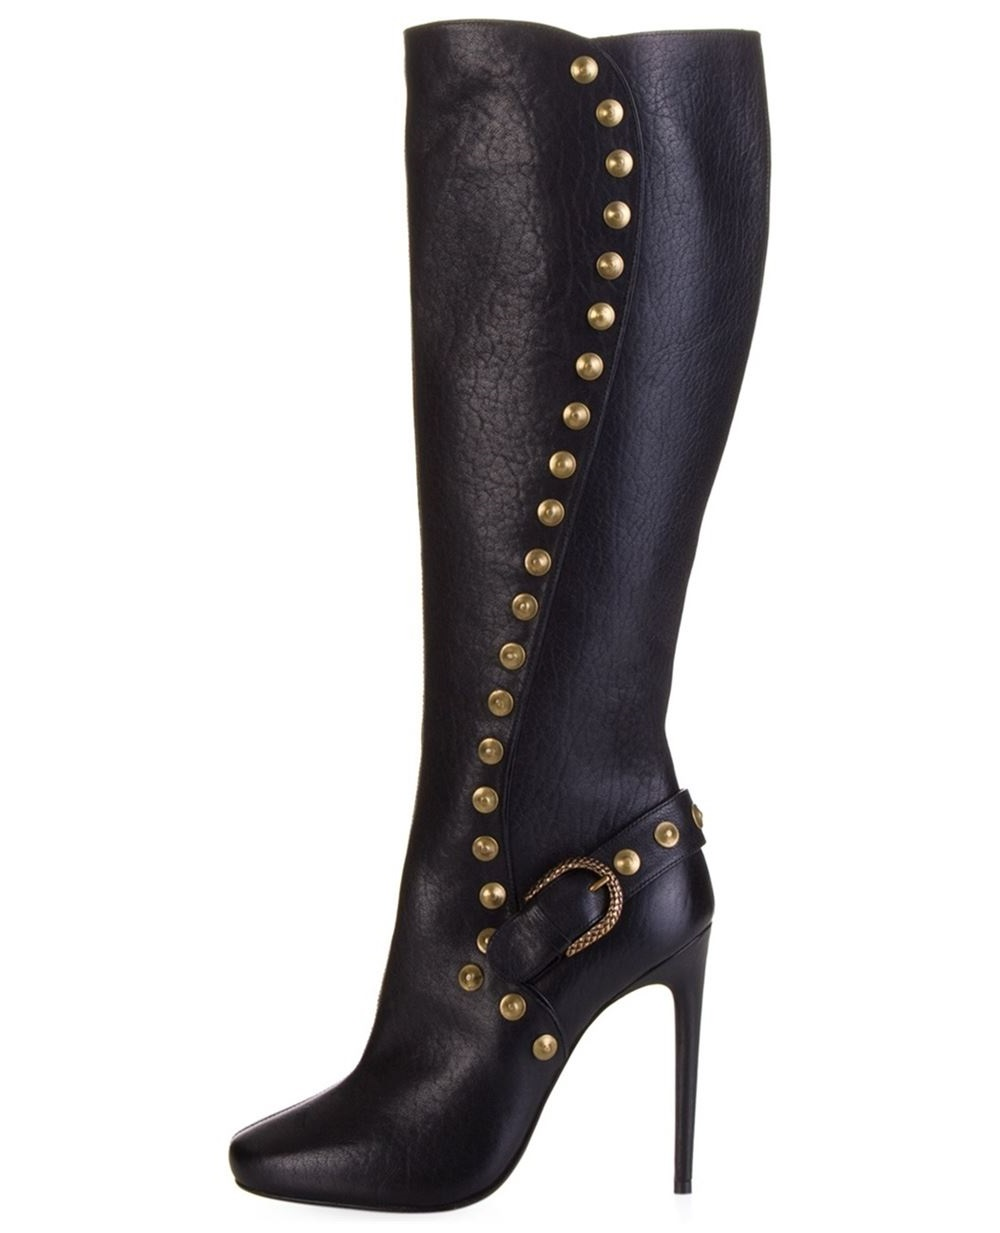 2018 stiletto Sky High heel women's winter boots zipper knee high boots With rivets and Buckle big size For Christmas hattie big sky